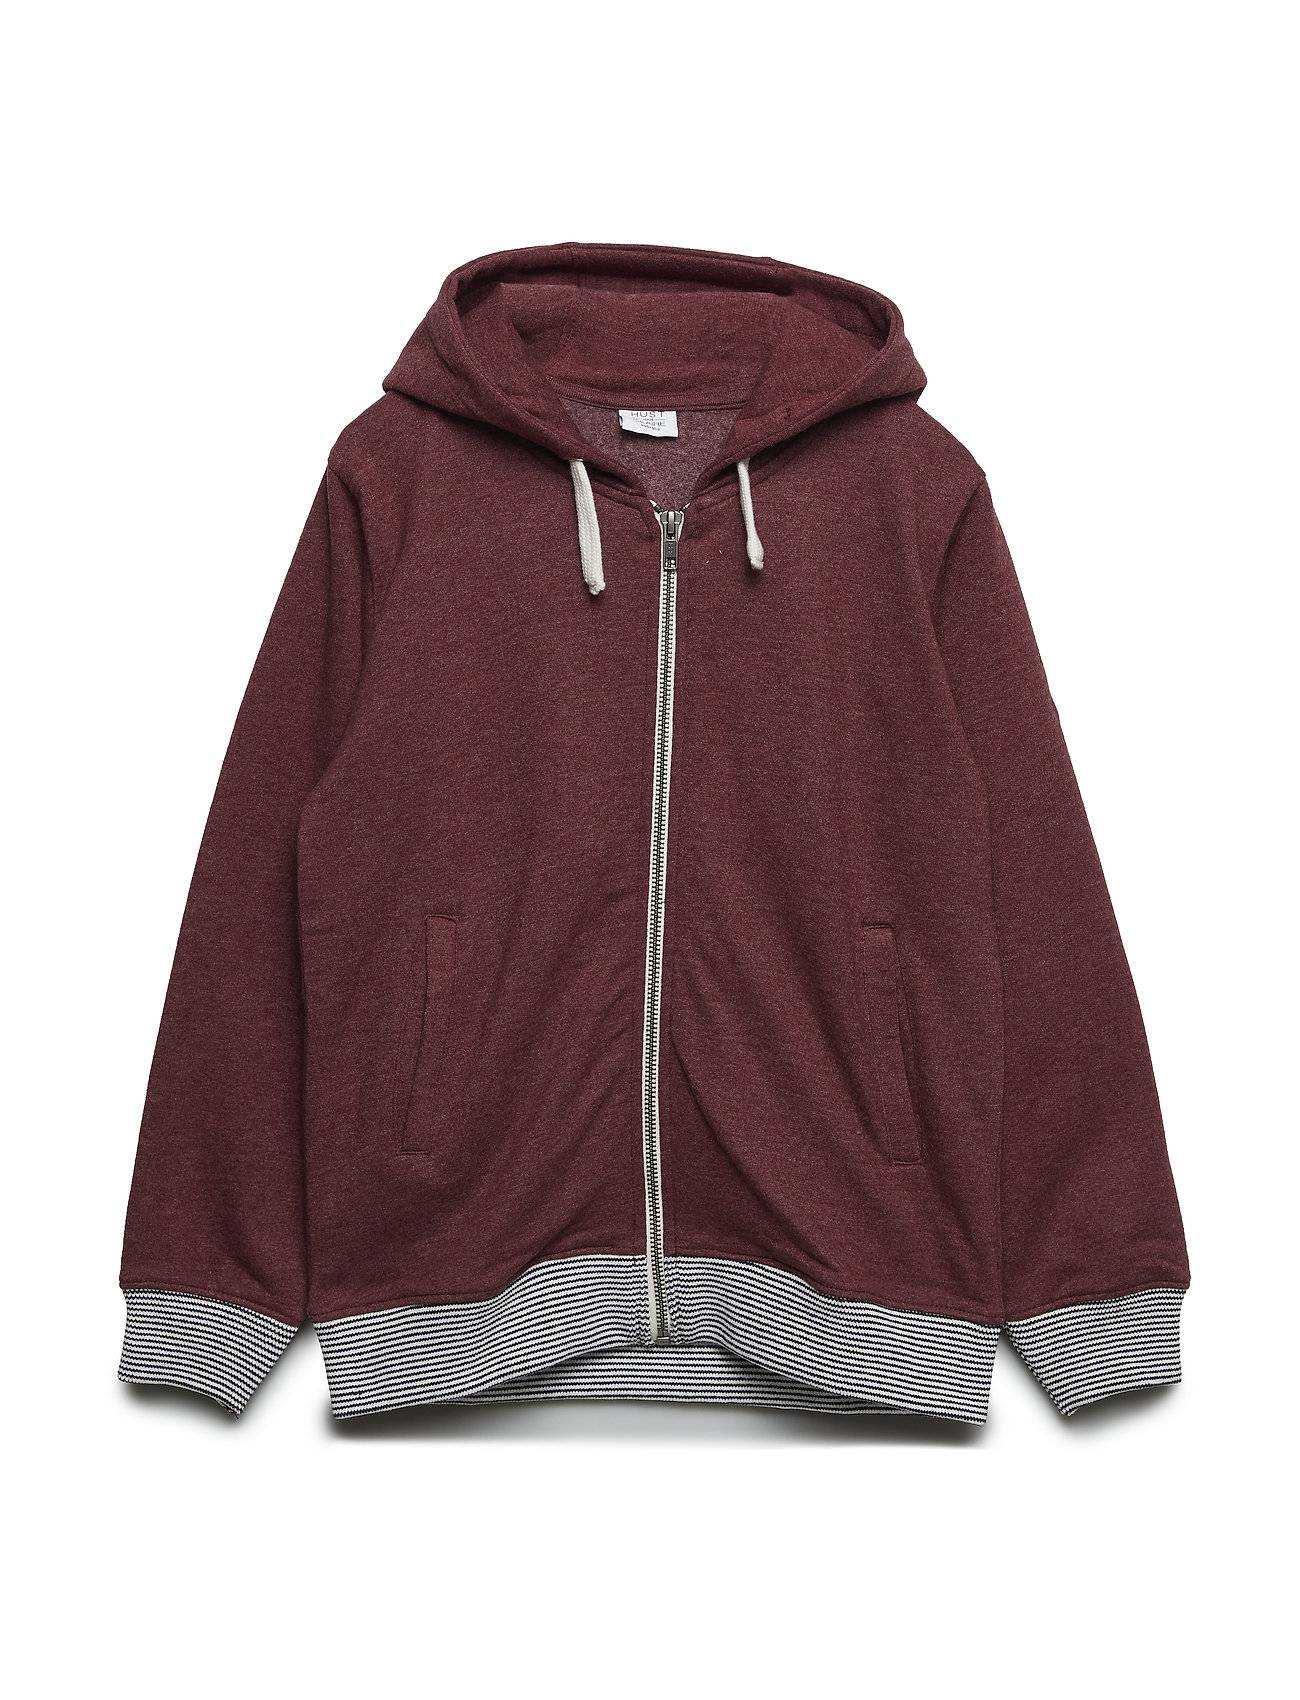 Hust & Claire Cosmo - Cardigan